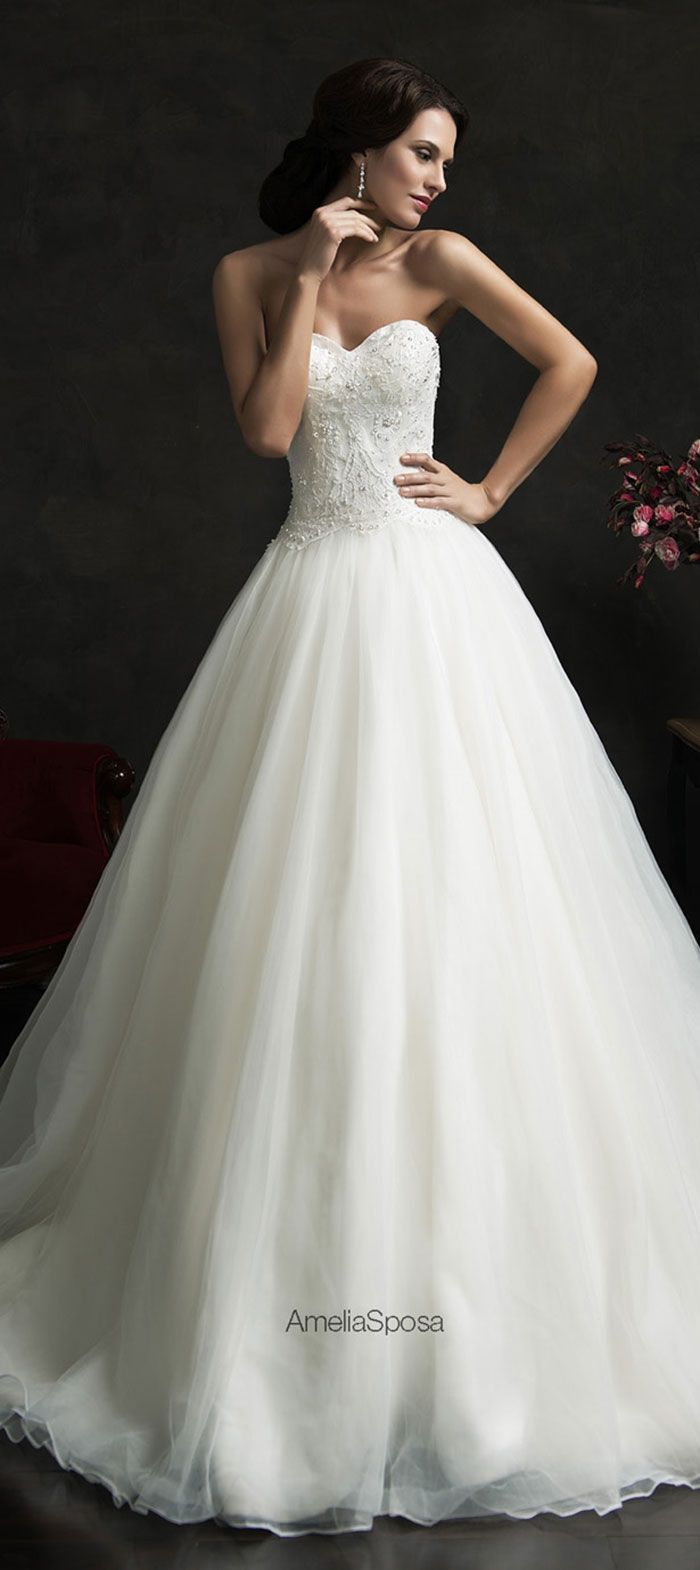 Related image beutiful dresses pinterest search